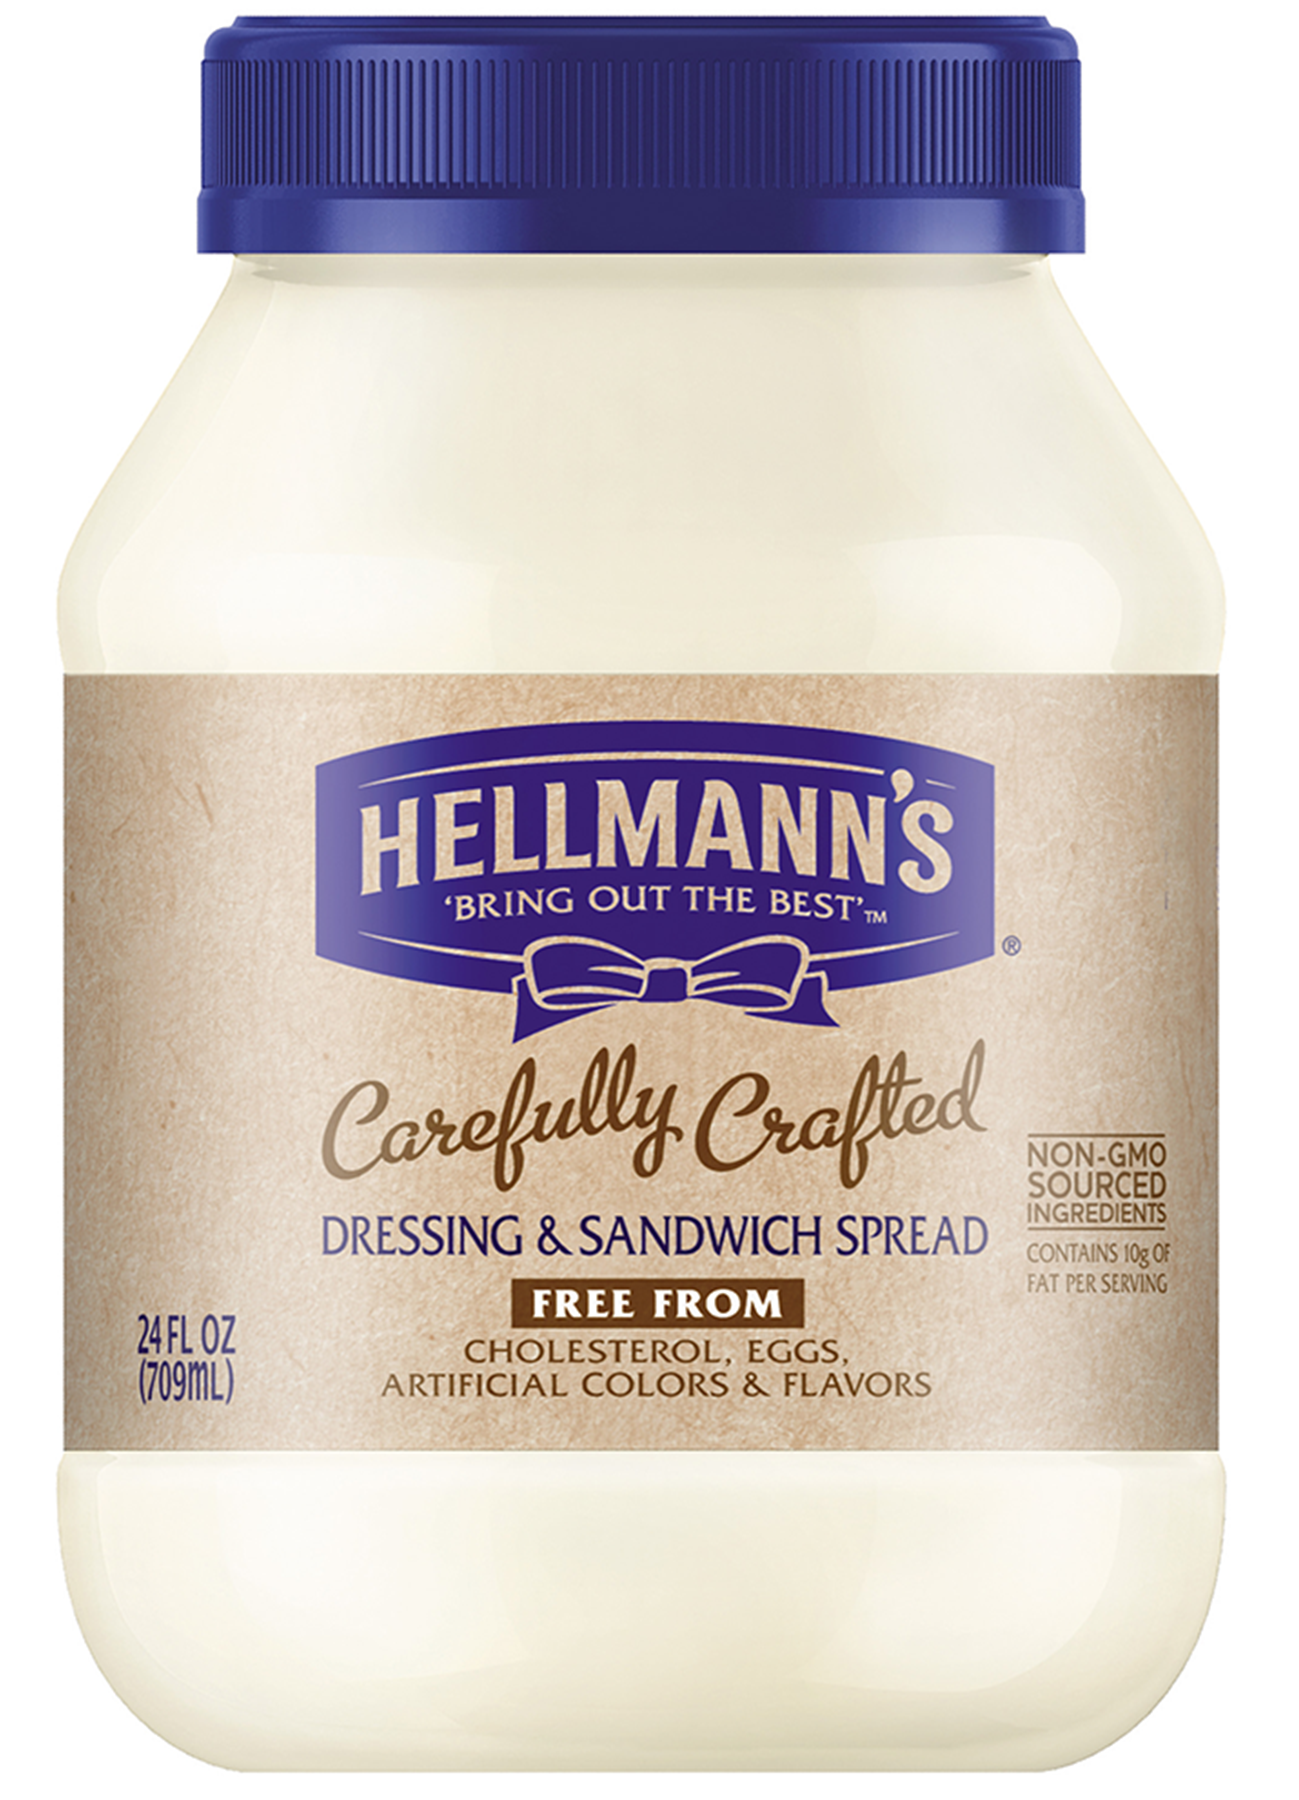 AterImber.com - The Veg Life - Product Reviews - Hellmans Carefully Crafted Dressing and Sandwich Spread - vegan food, vegan food reviewer